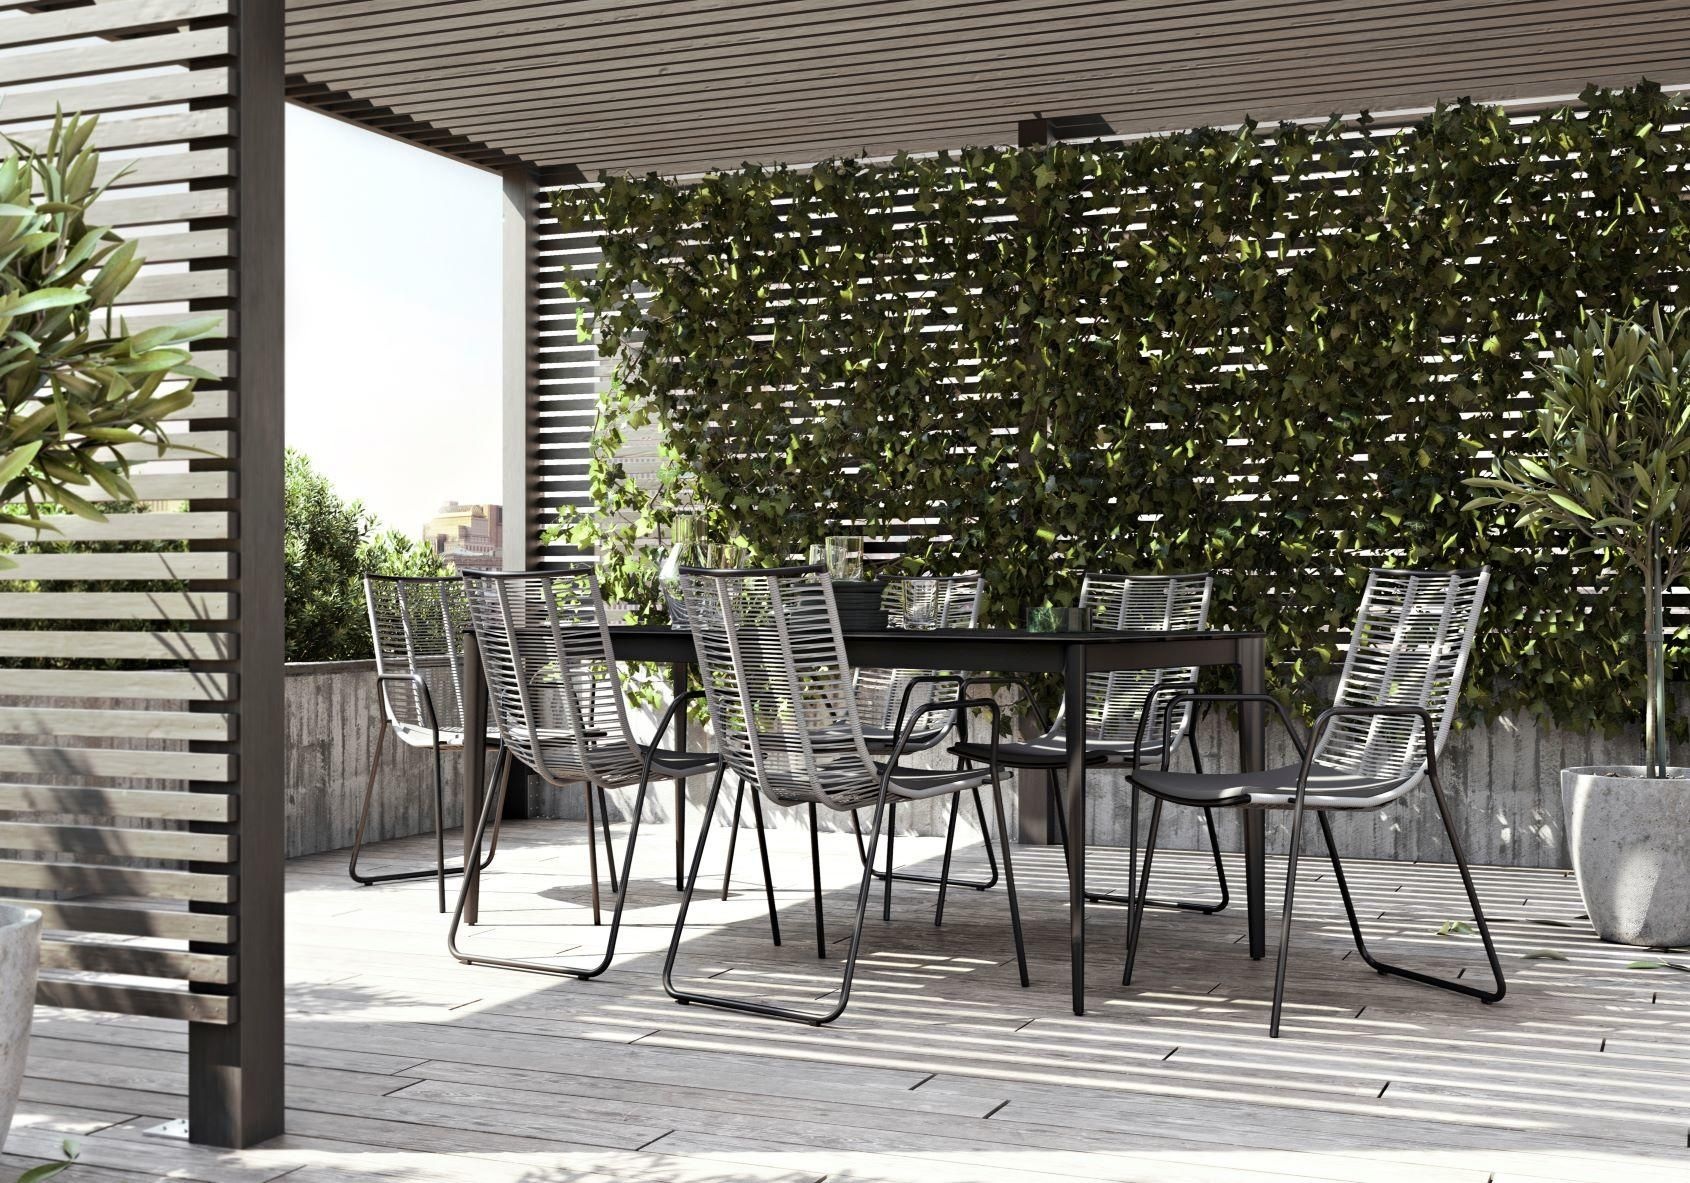 Pin By Namolio On Garden Plants Modern Outdoor Dining Furniture Outdoor Dining Furniture Modern Outdoor Dining